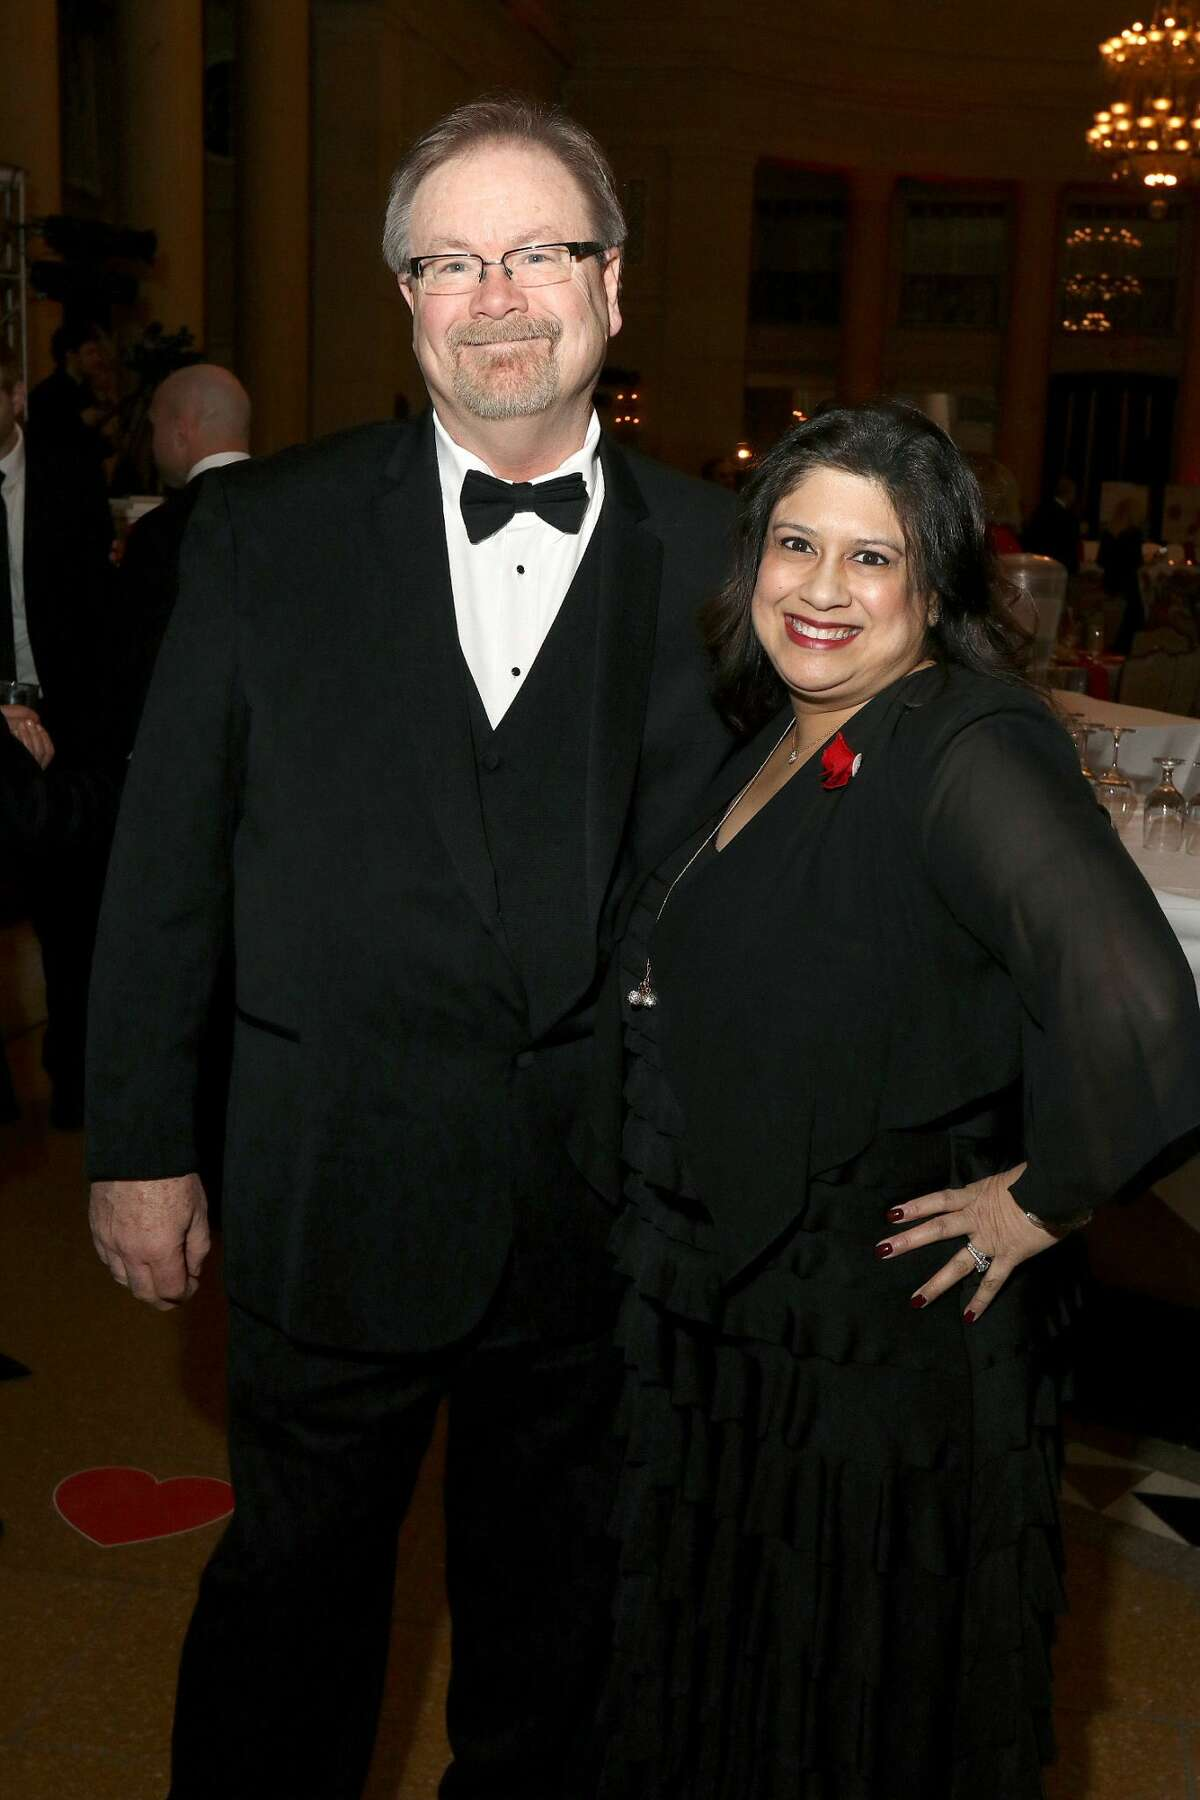 Were you Seen at the 37th Annual Capital Region Heart Ball honoring Dr. Eric Spooner, to benefit the American Heart Association, at the Hall of Springs in Saratoga Springs on Saturday, February 29, 2020?